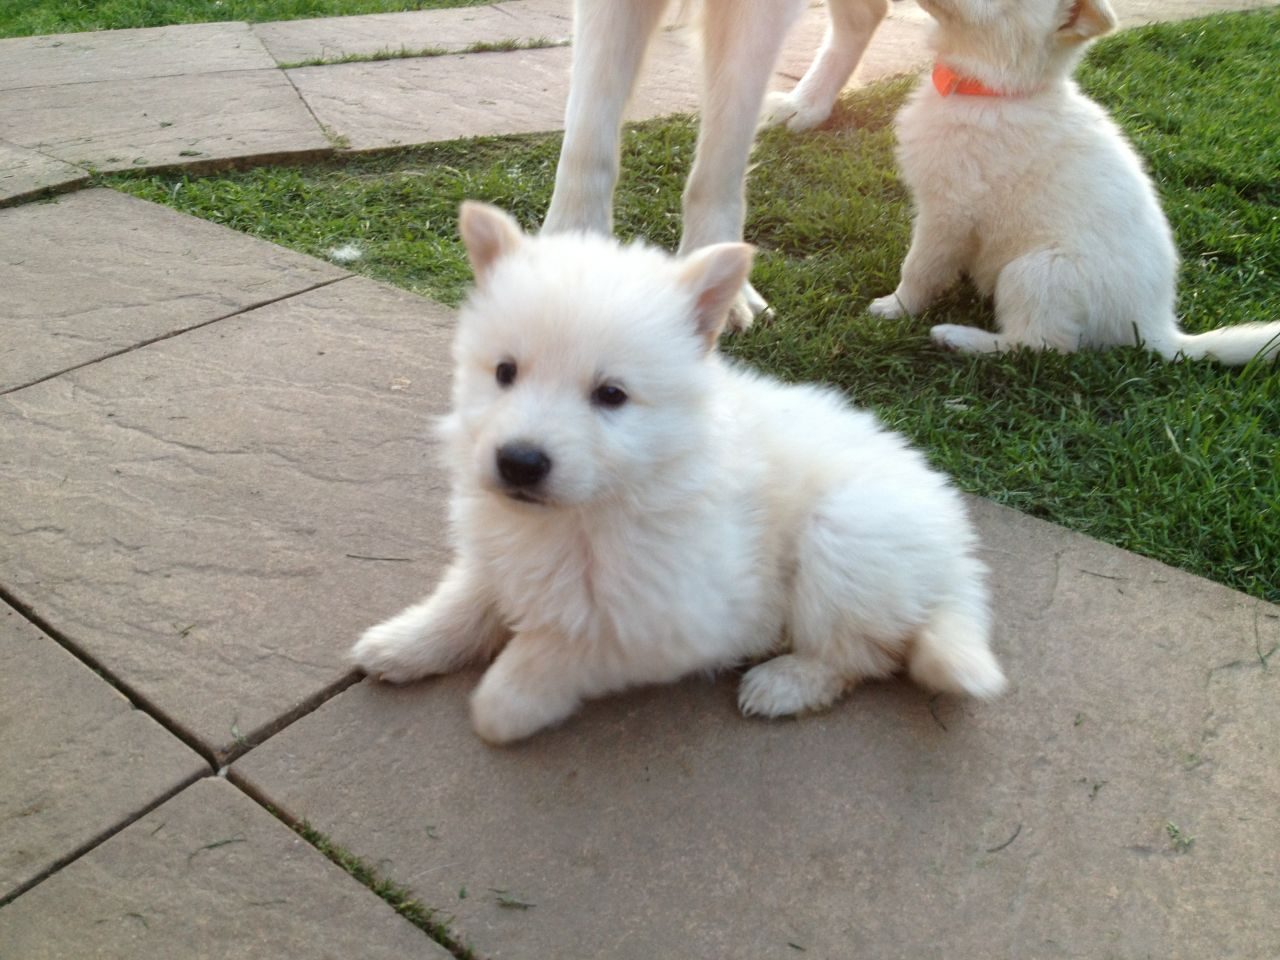 Cute animals for sale - Cute White German Shepherd Puppies Images